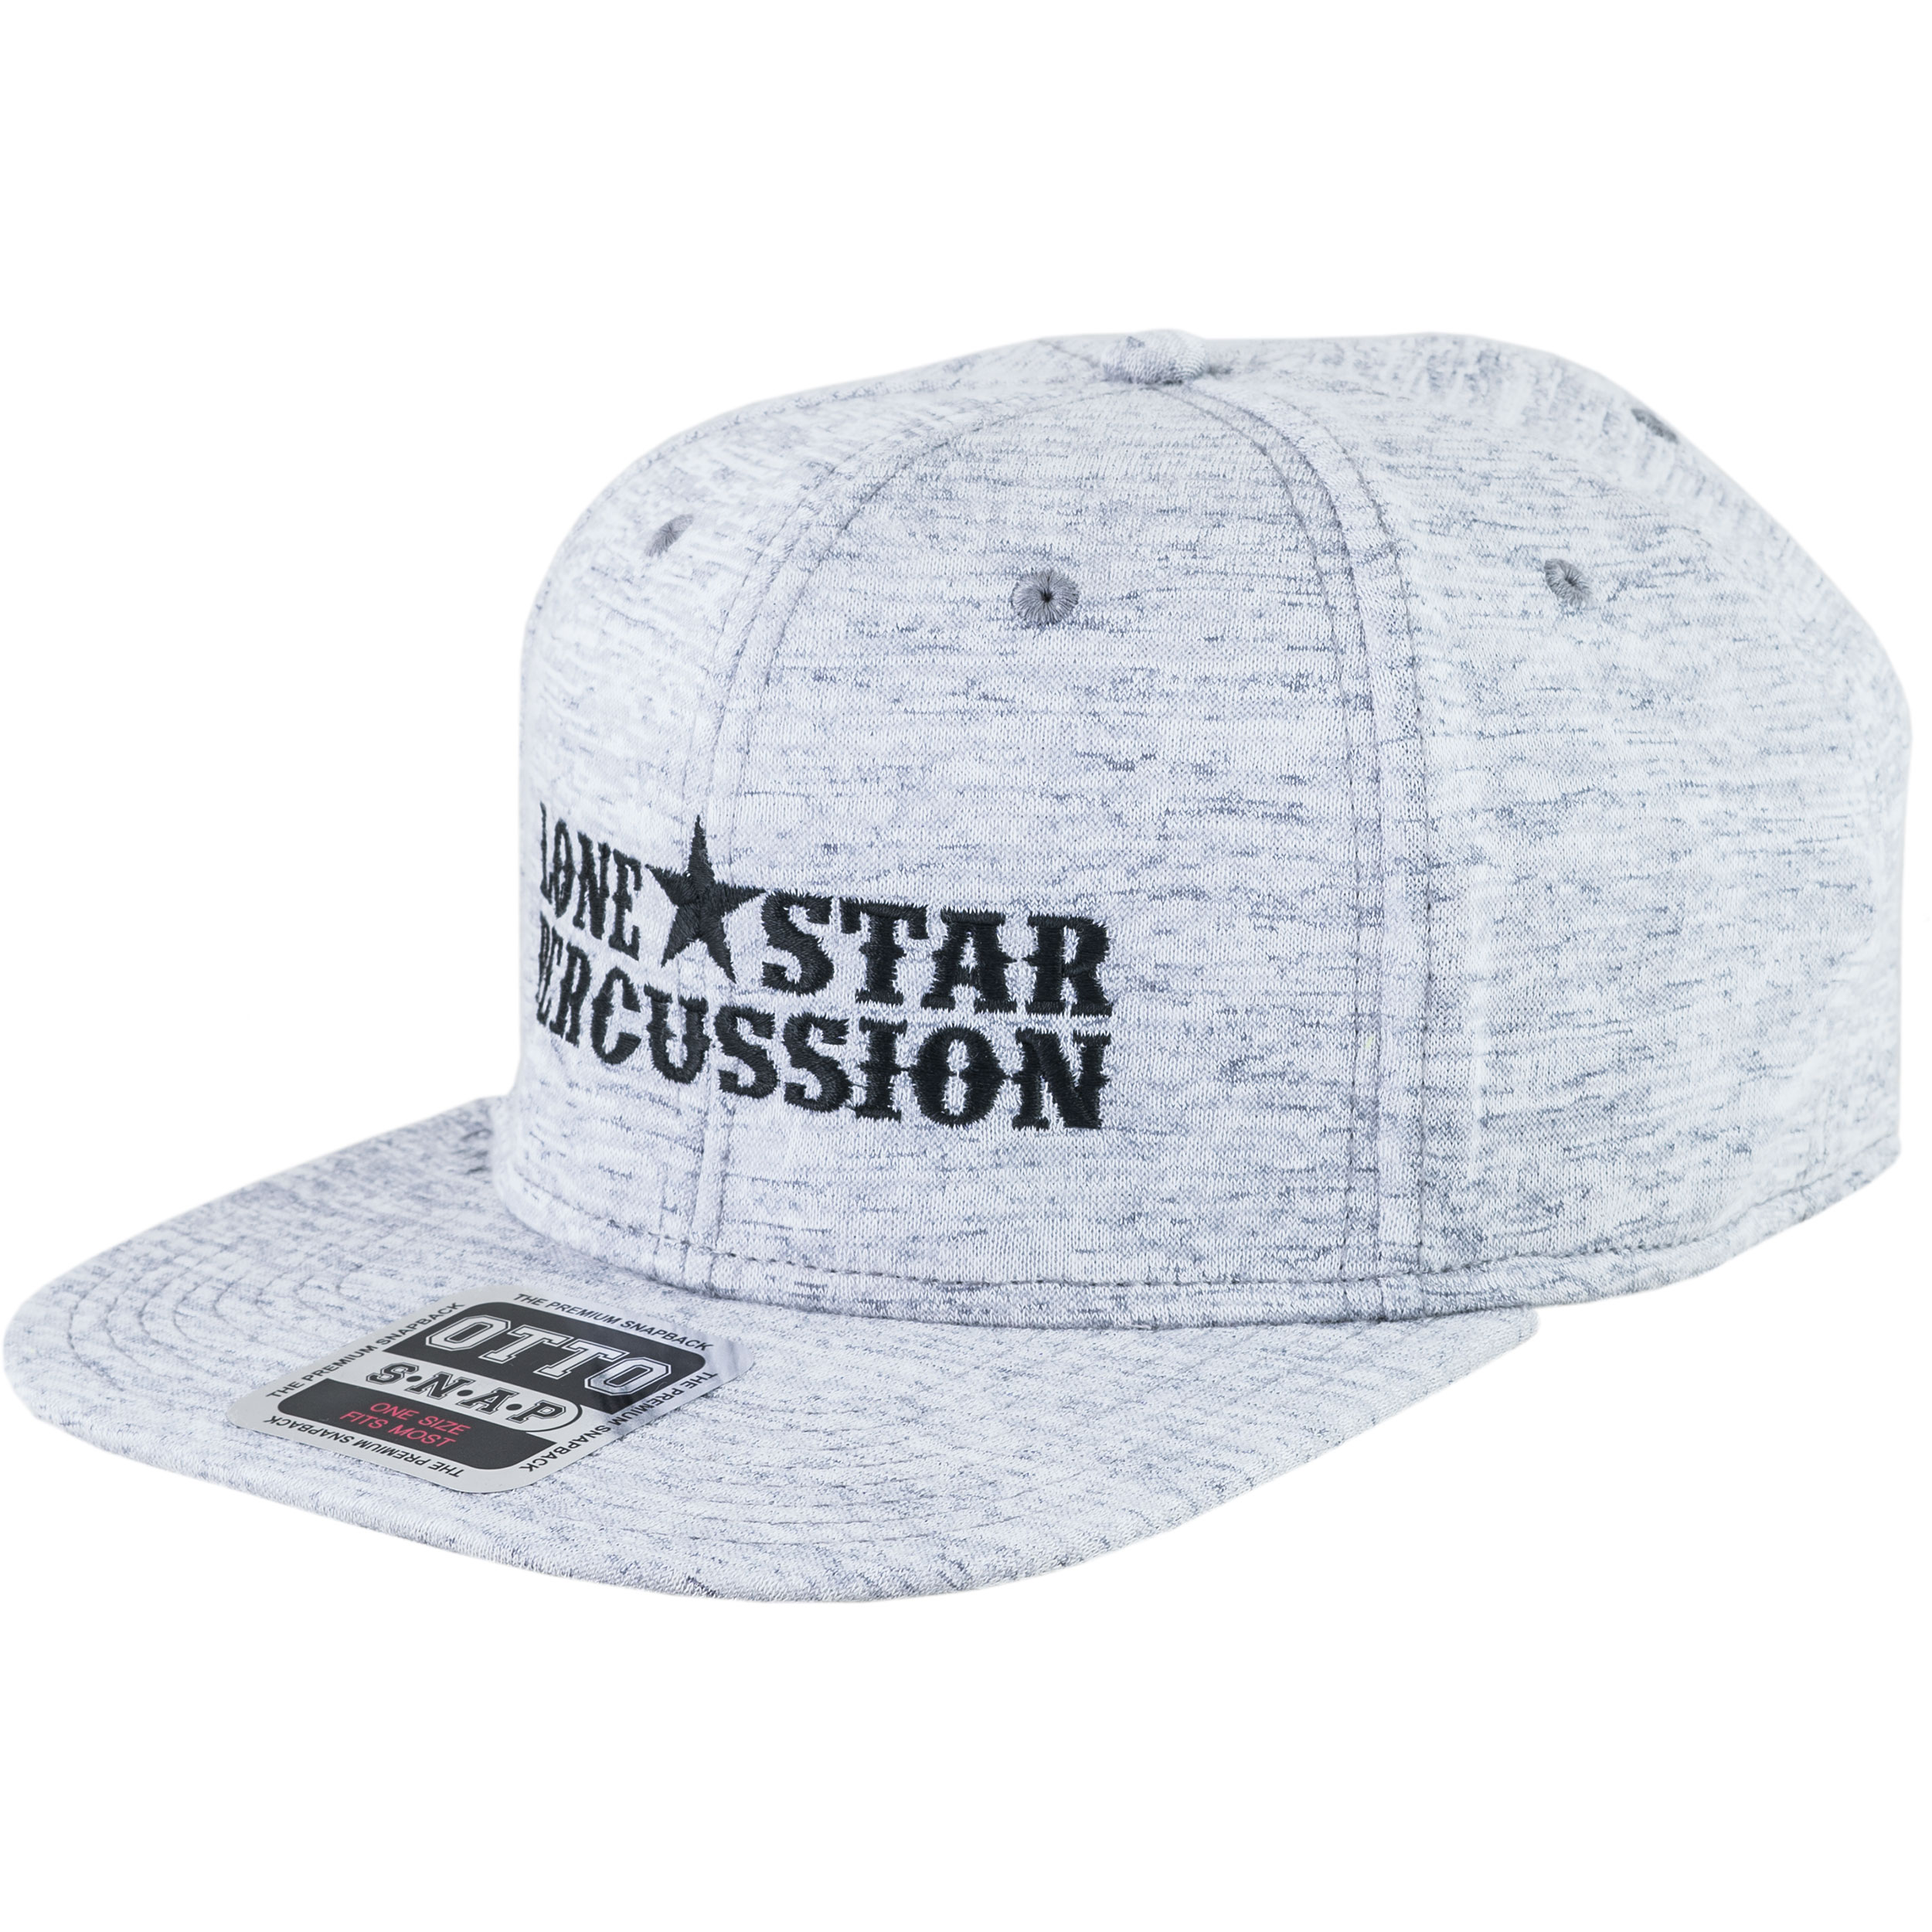 Lone Star Percussion Heather Gray Jersey Snapback Baseball Cap